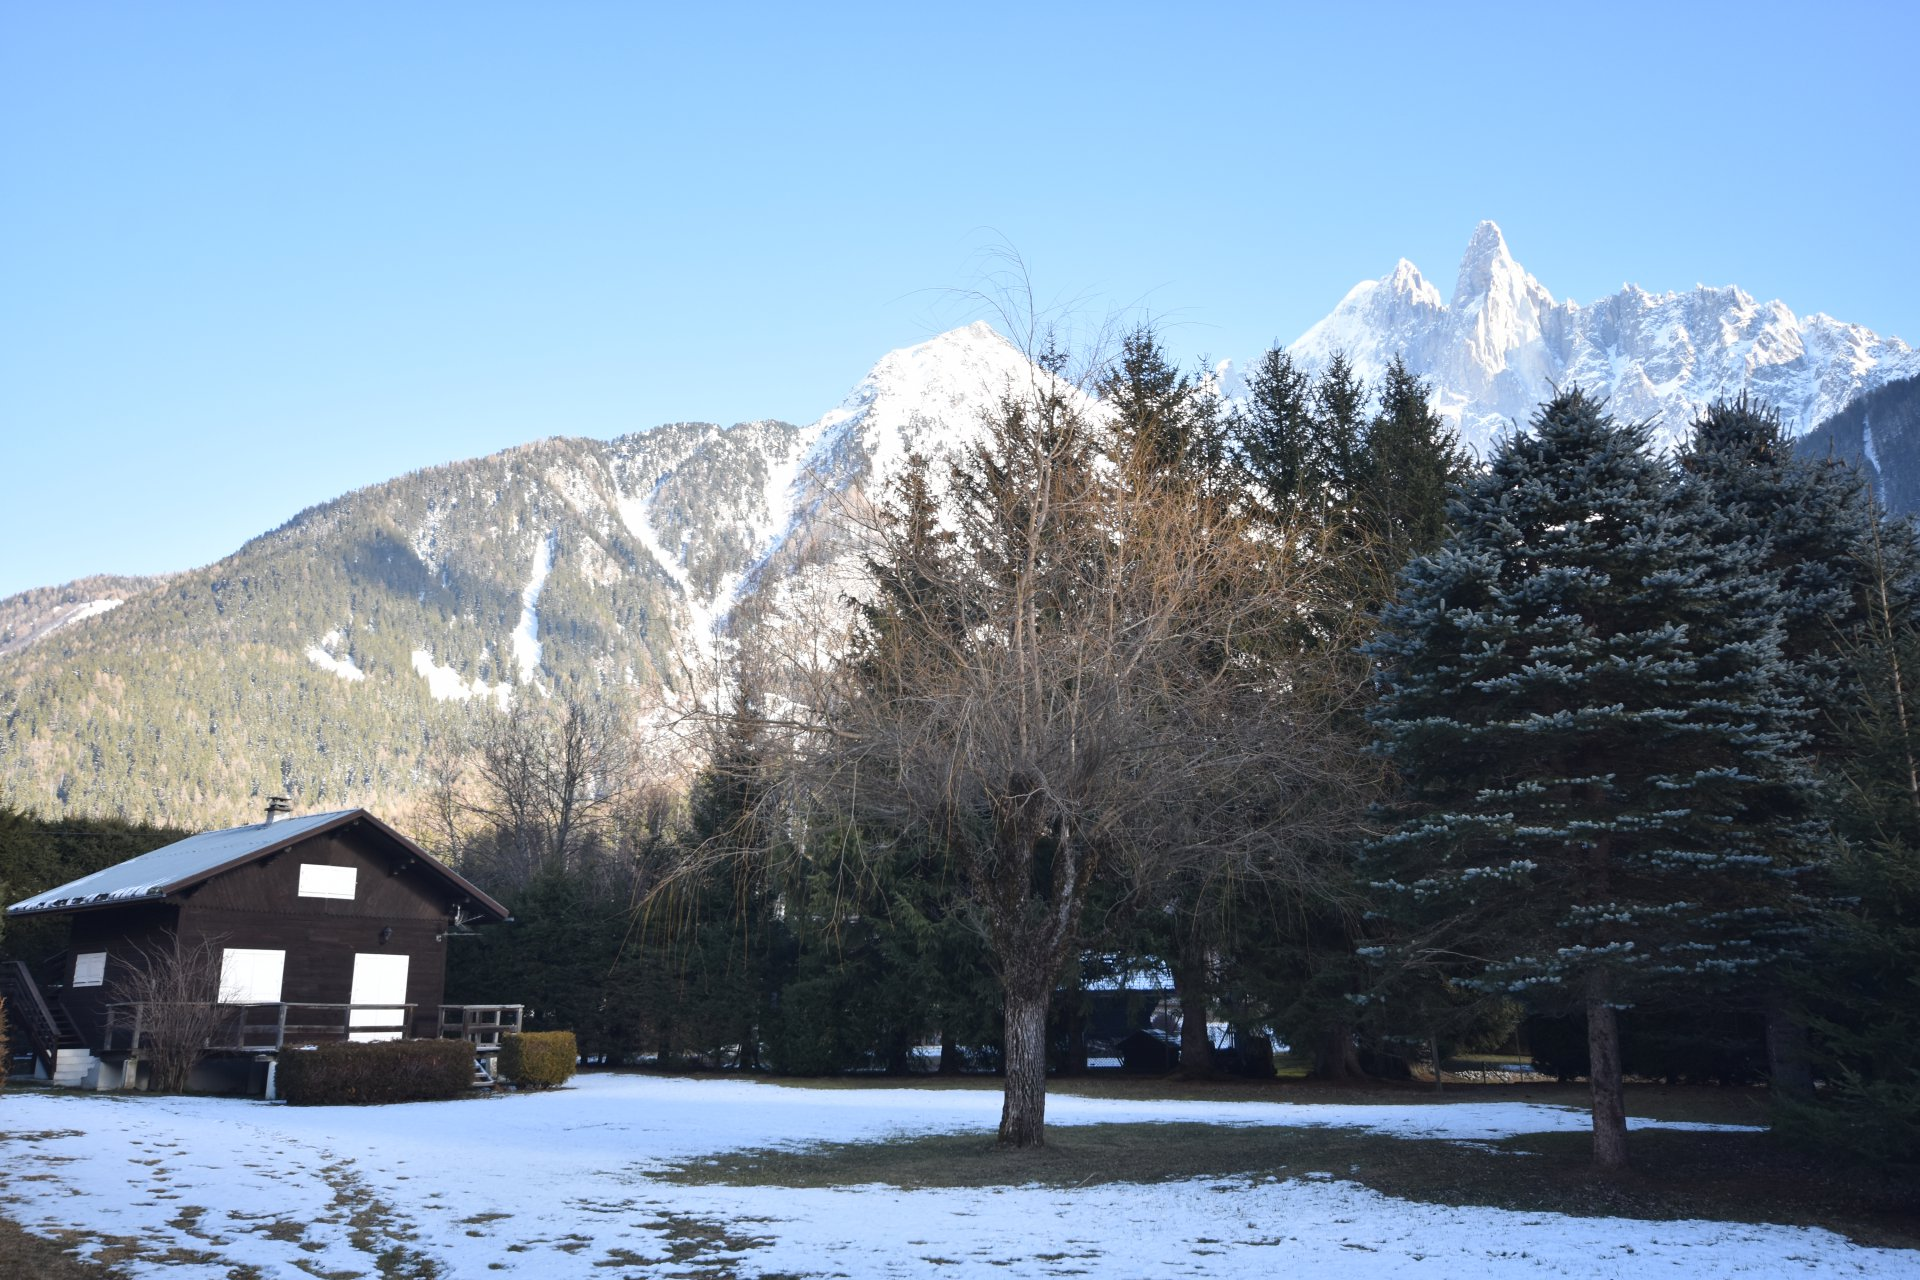 Sale Plot of land - Chamonix-Mont-Blanc Les Bois